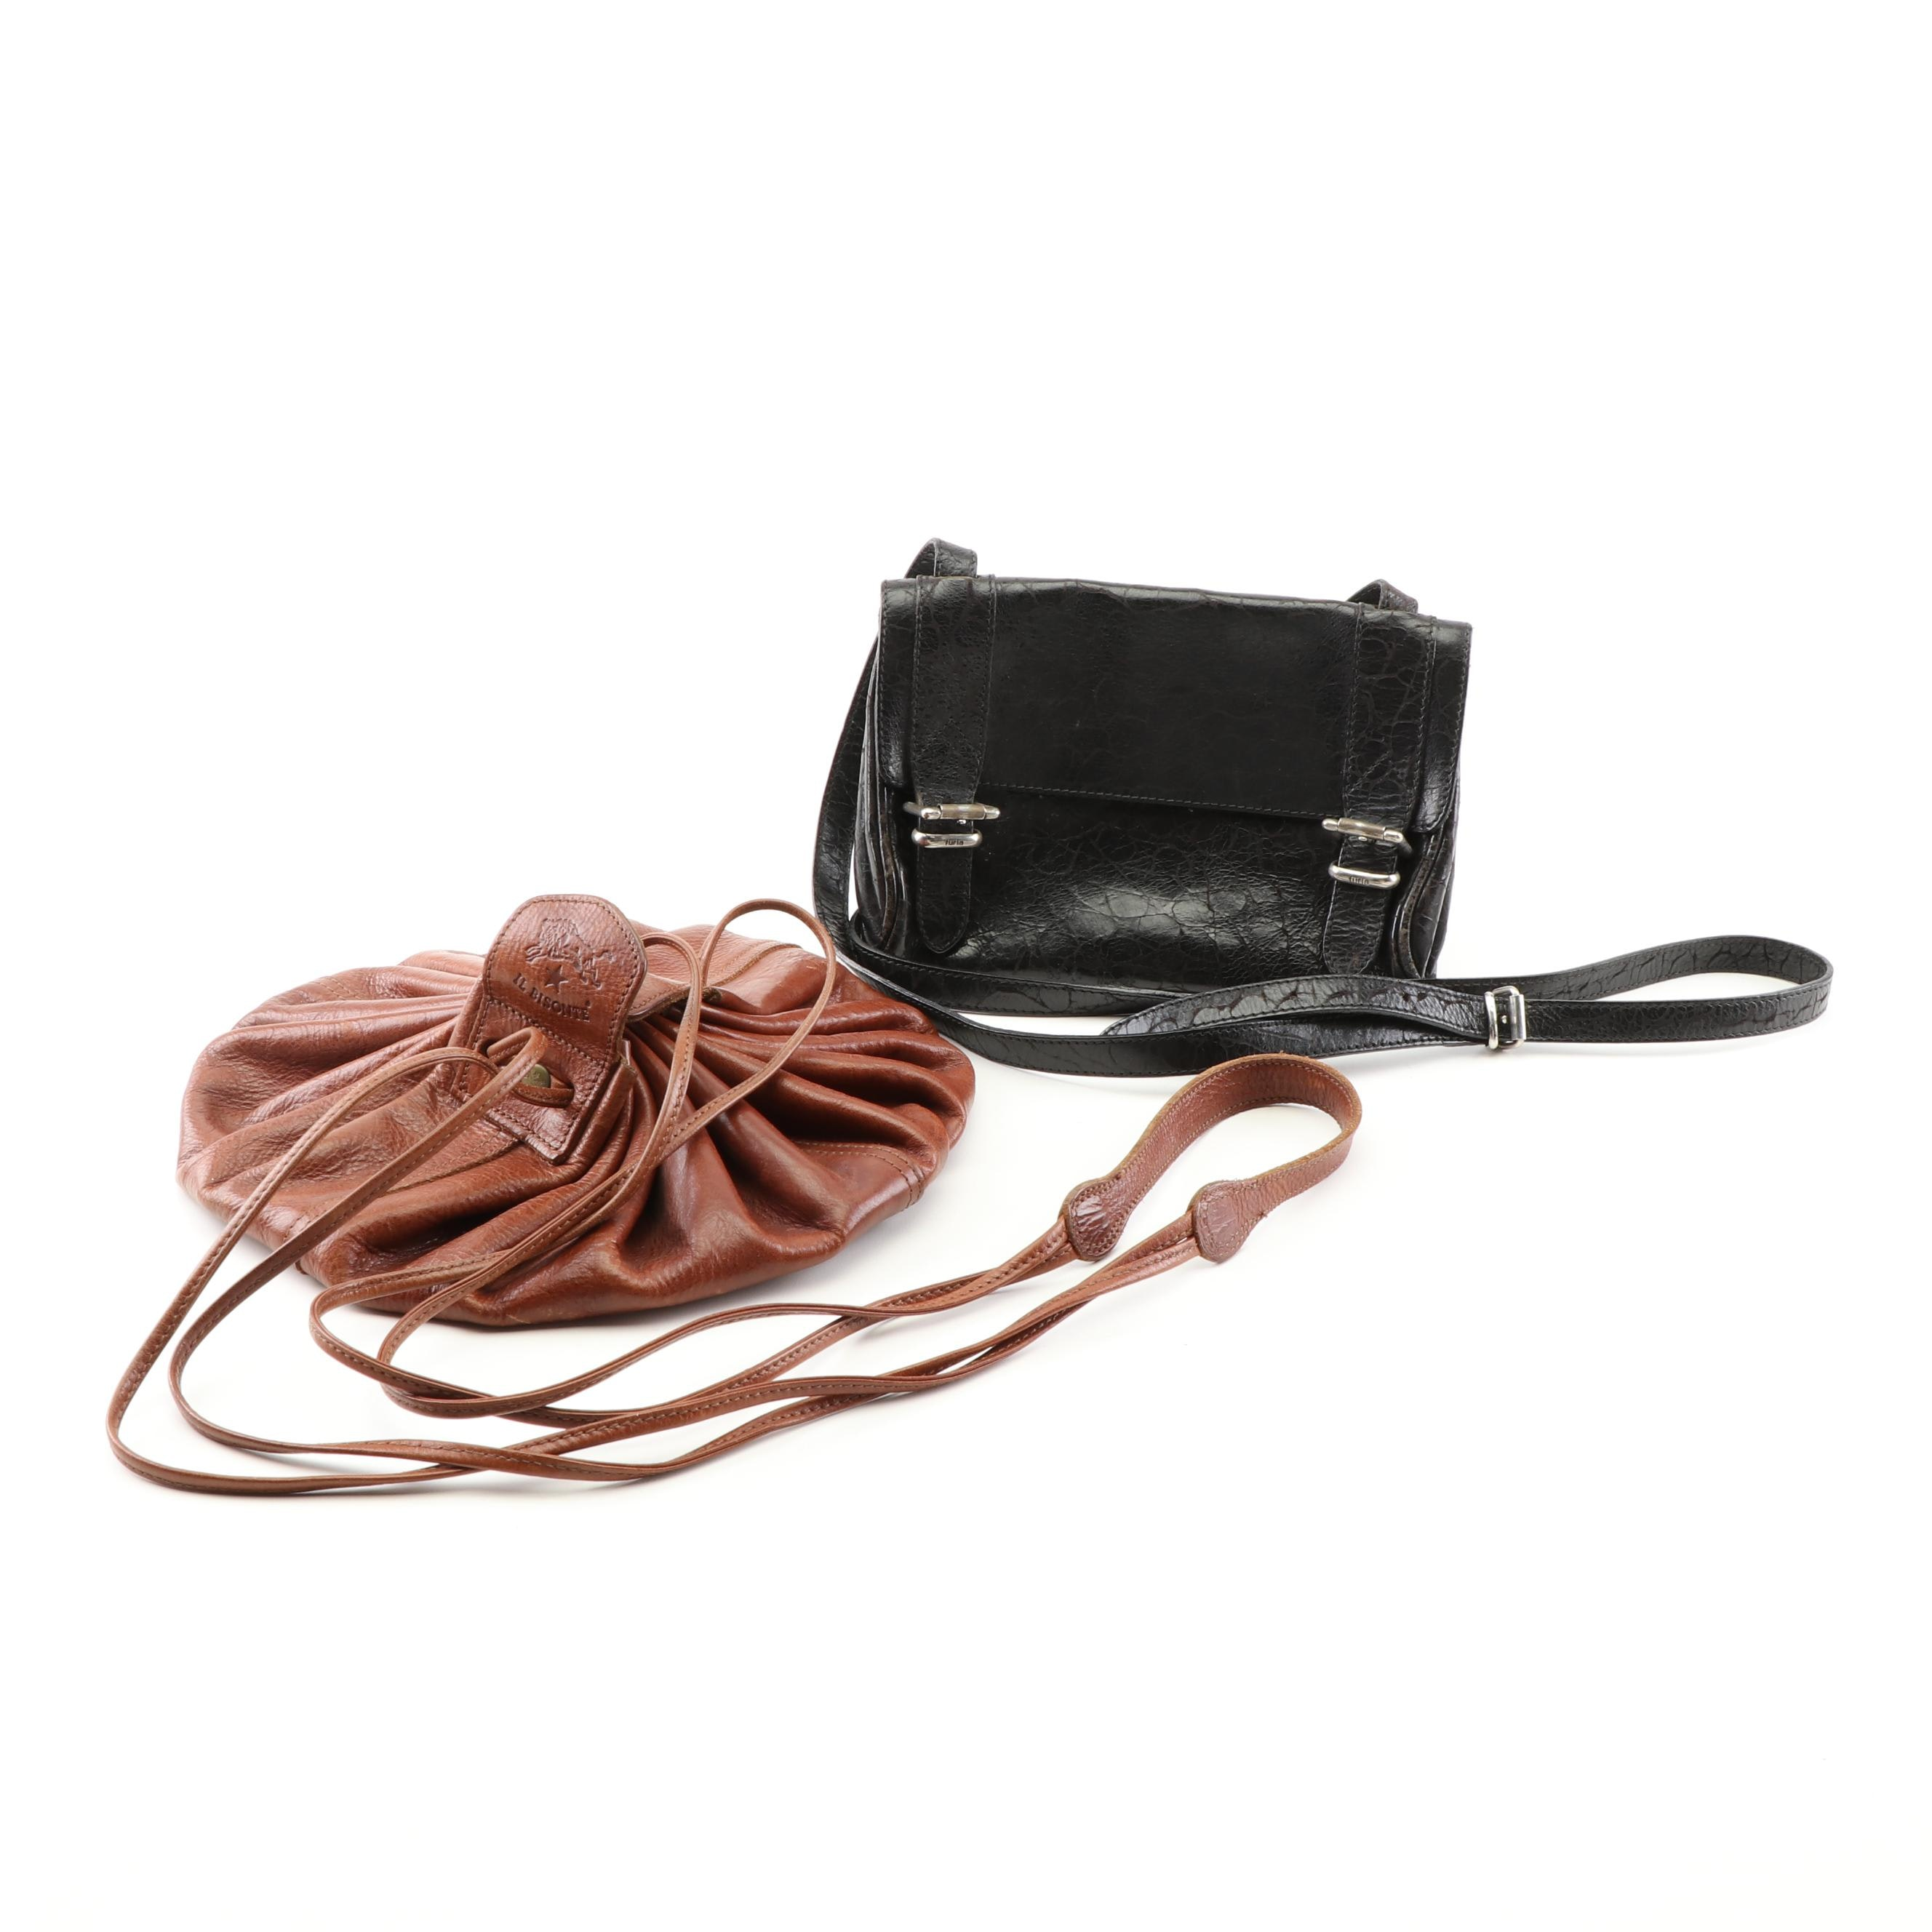 Furla Black Embossed Leather Crossbody Bag and Il Bisonte Cowhide Leather Pouch